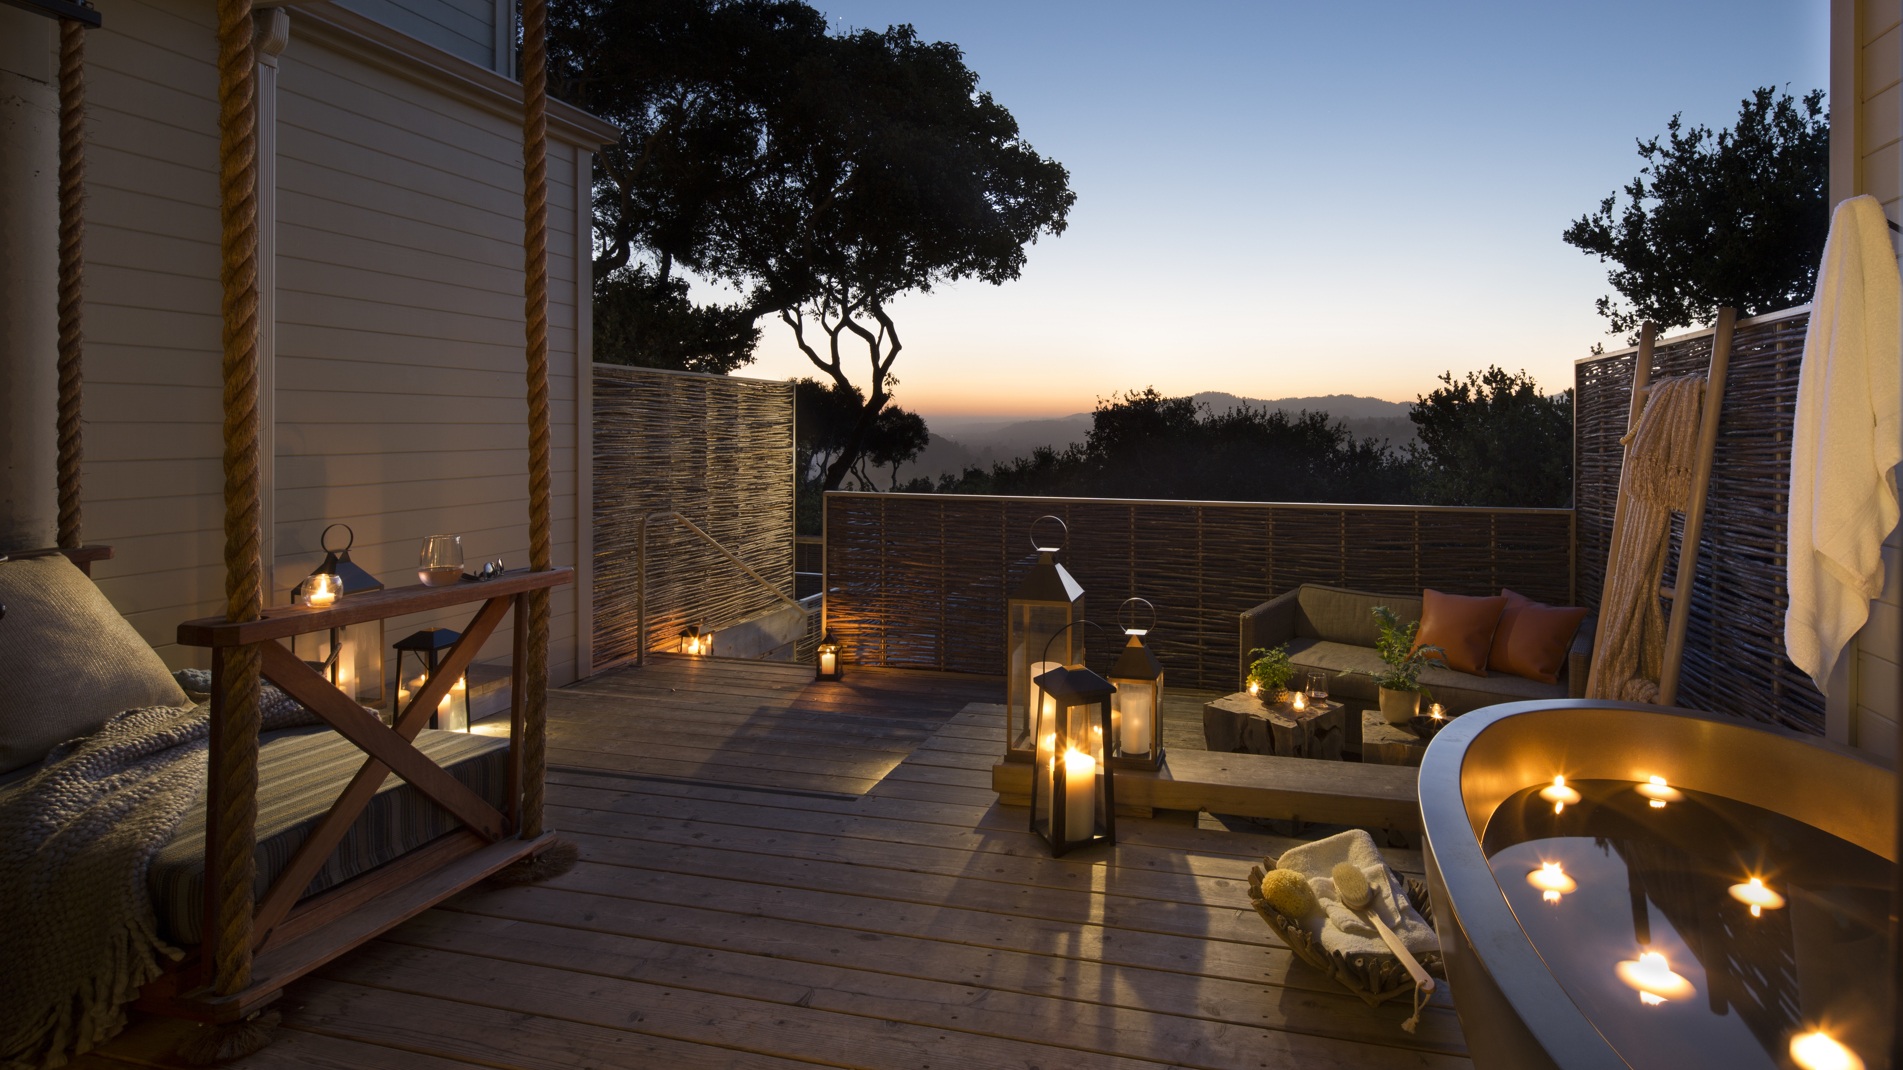 Carmel Valley Ranch_Accommodations_Vineyard Oak Studio_with tub_candles_09_PD